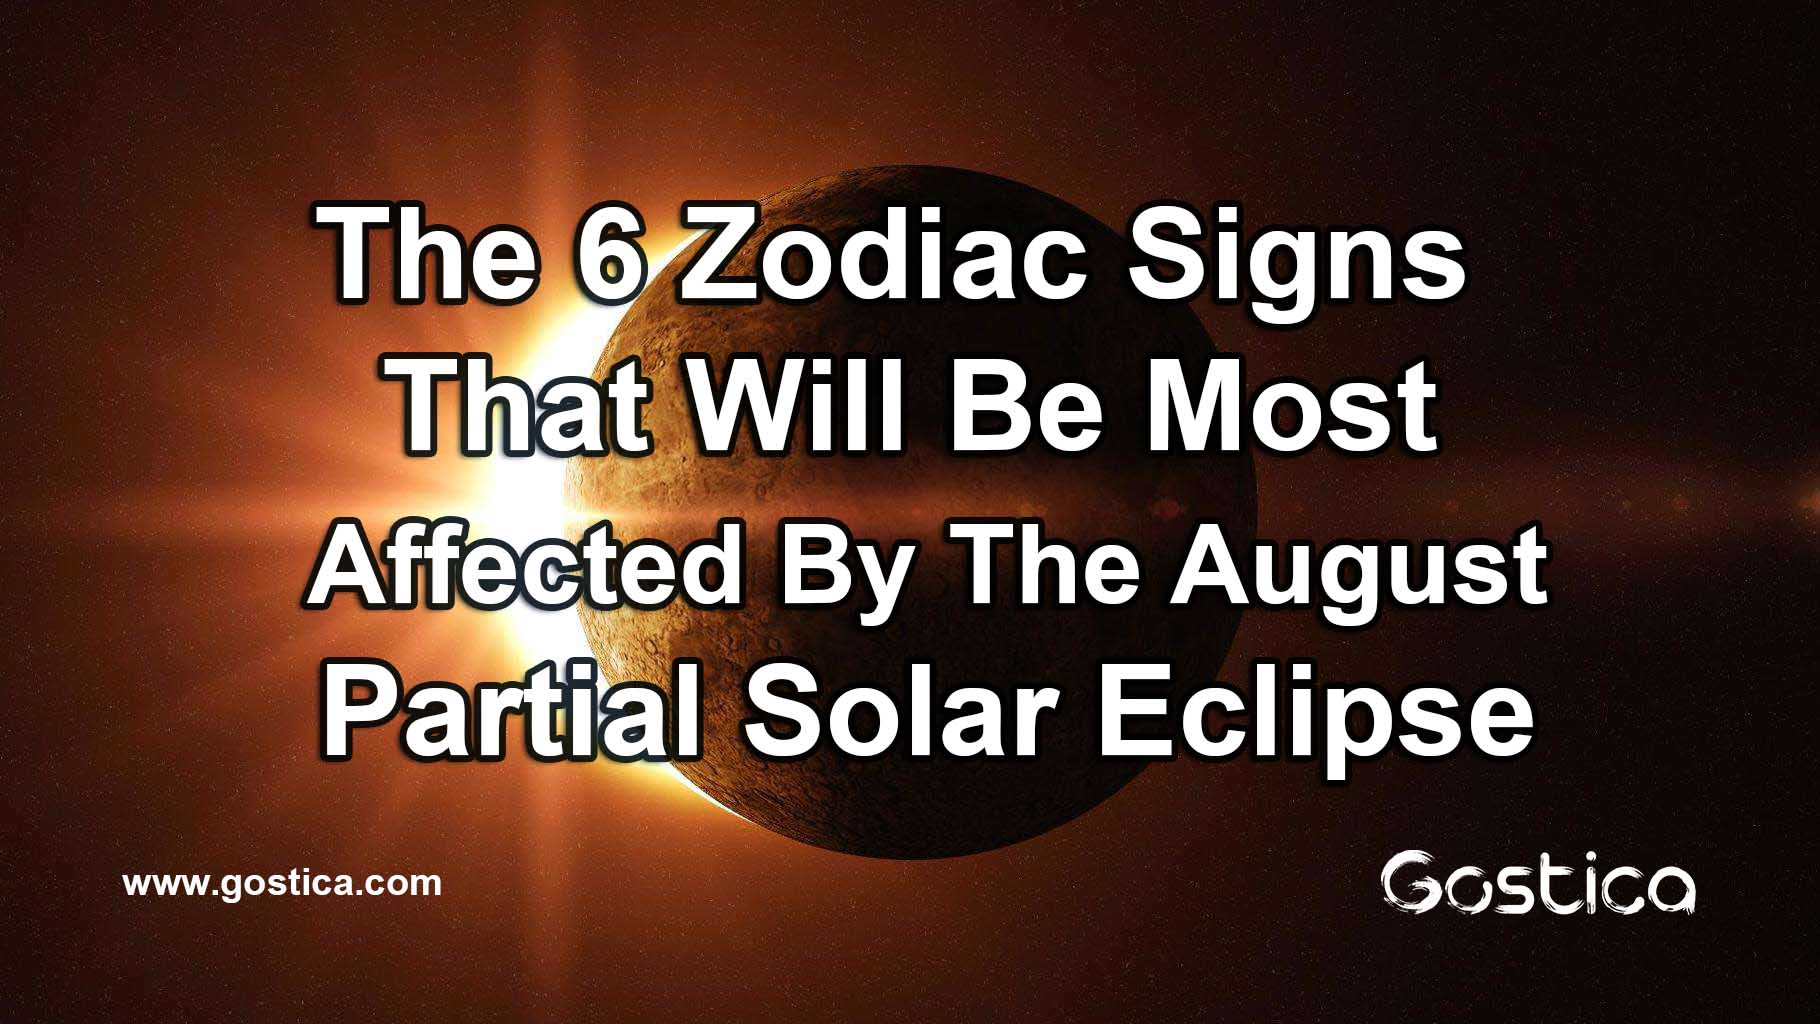 The-6-Zodiac-Signs-That-Will-Be-Most-Affected-By-The-August-Partial-Solar-Eclipse.jpg